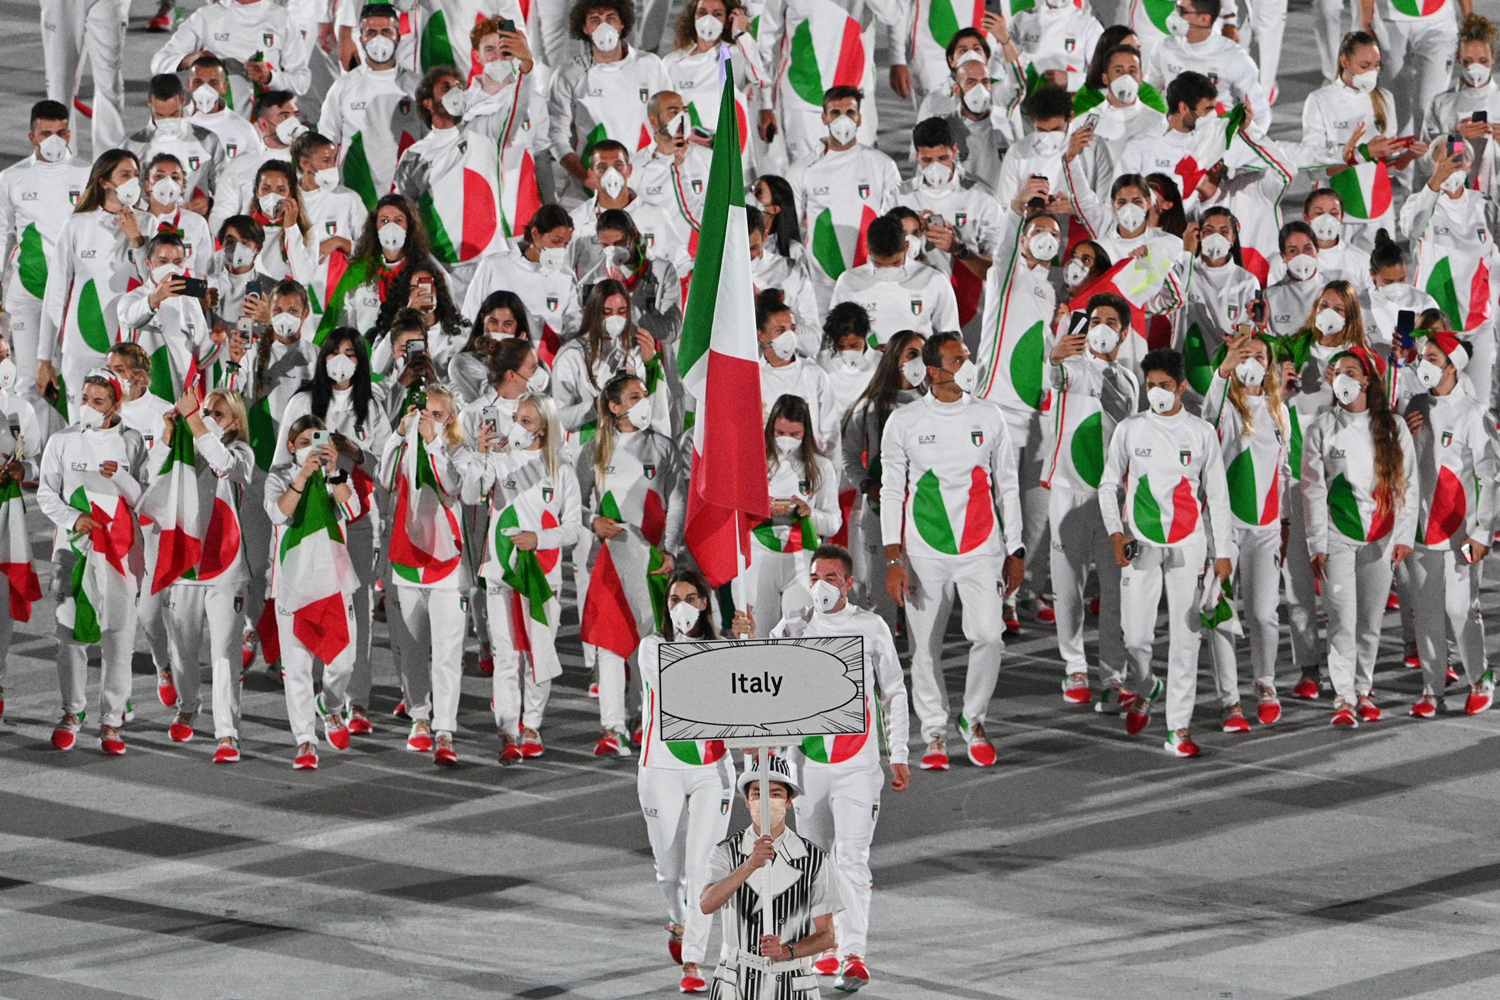 Italy's flag bearer Jessica Rossi (L) and Italy's flag bearer Elia Viviani lead the delegation during the opening ceremony of the Tokyo 2020 Olympic Games